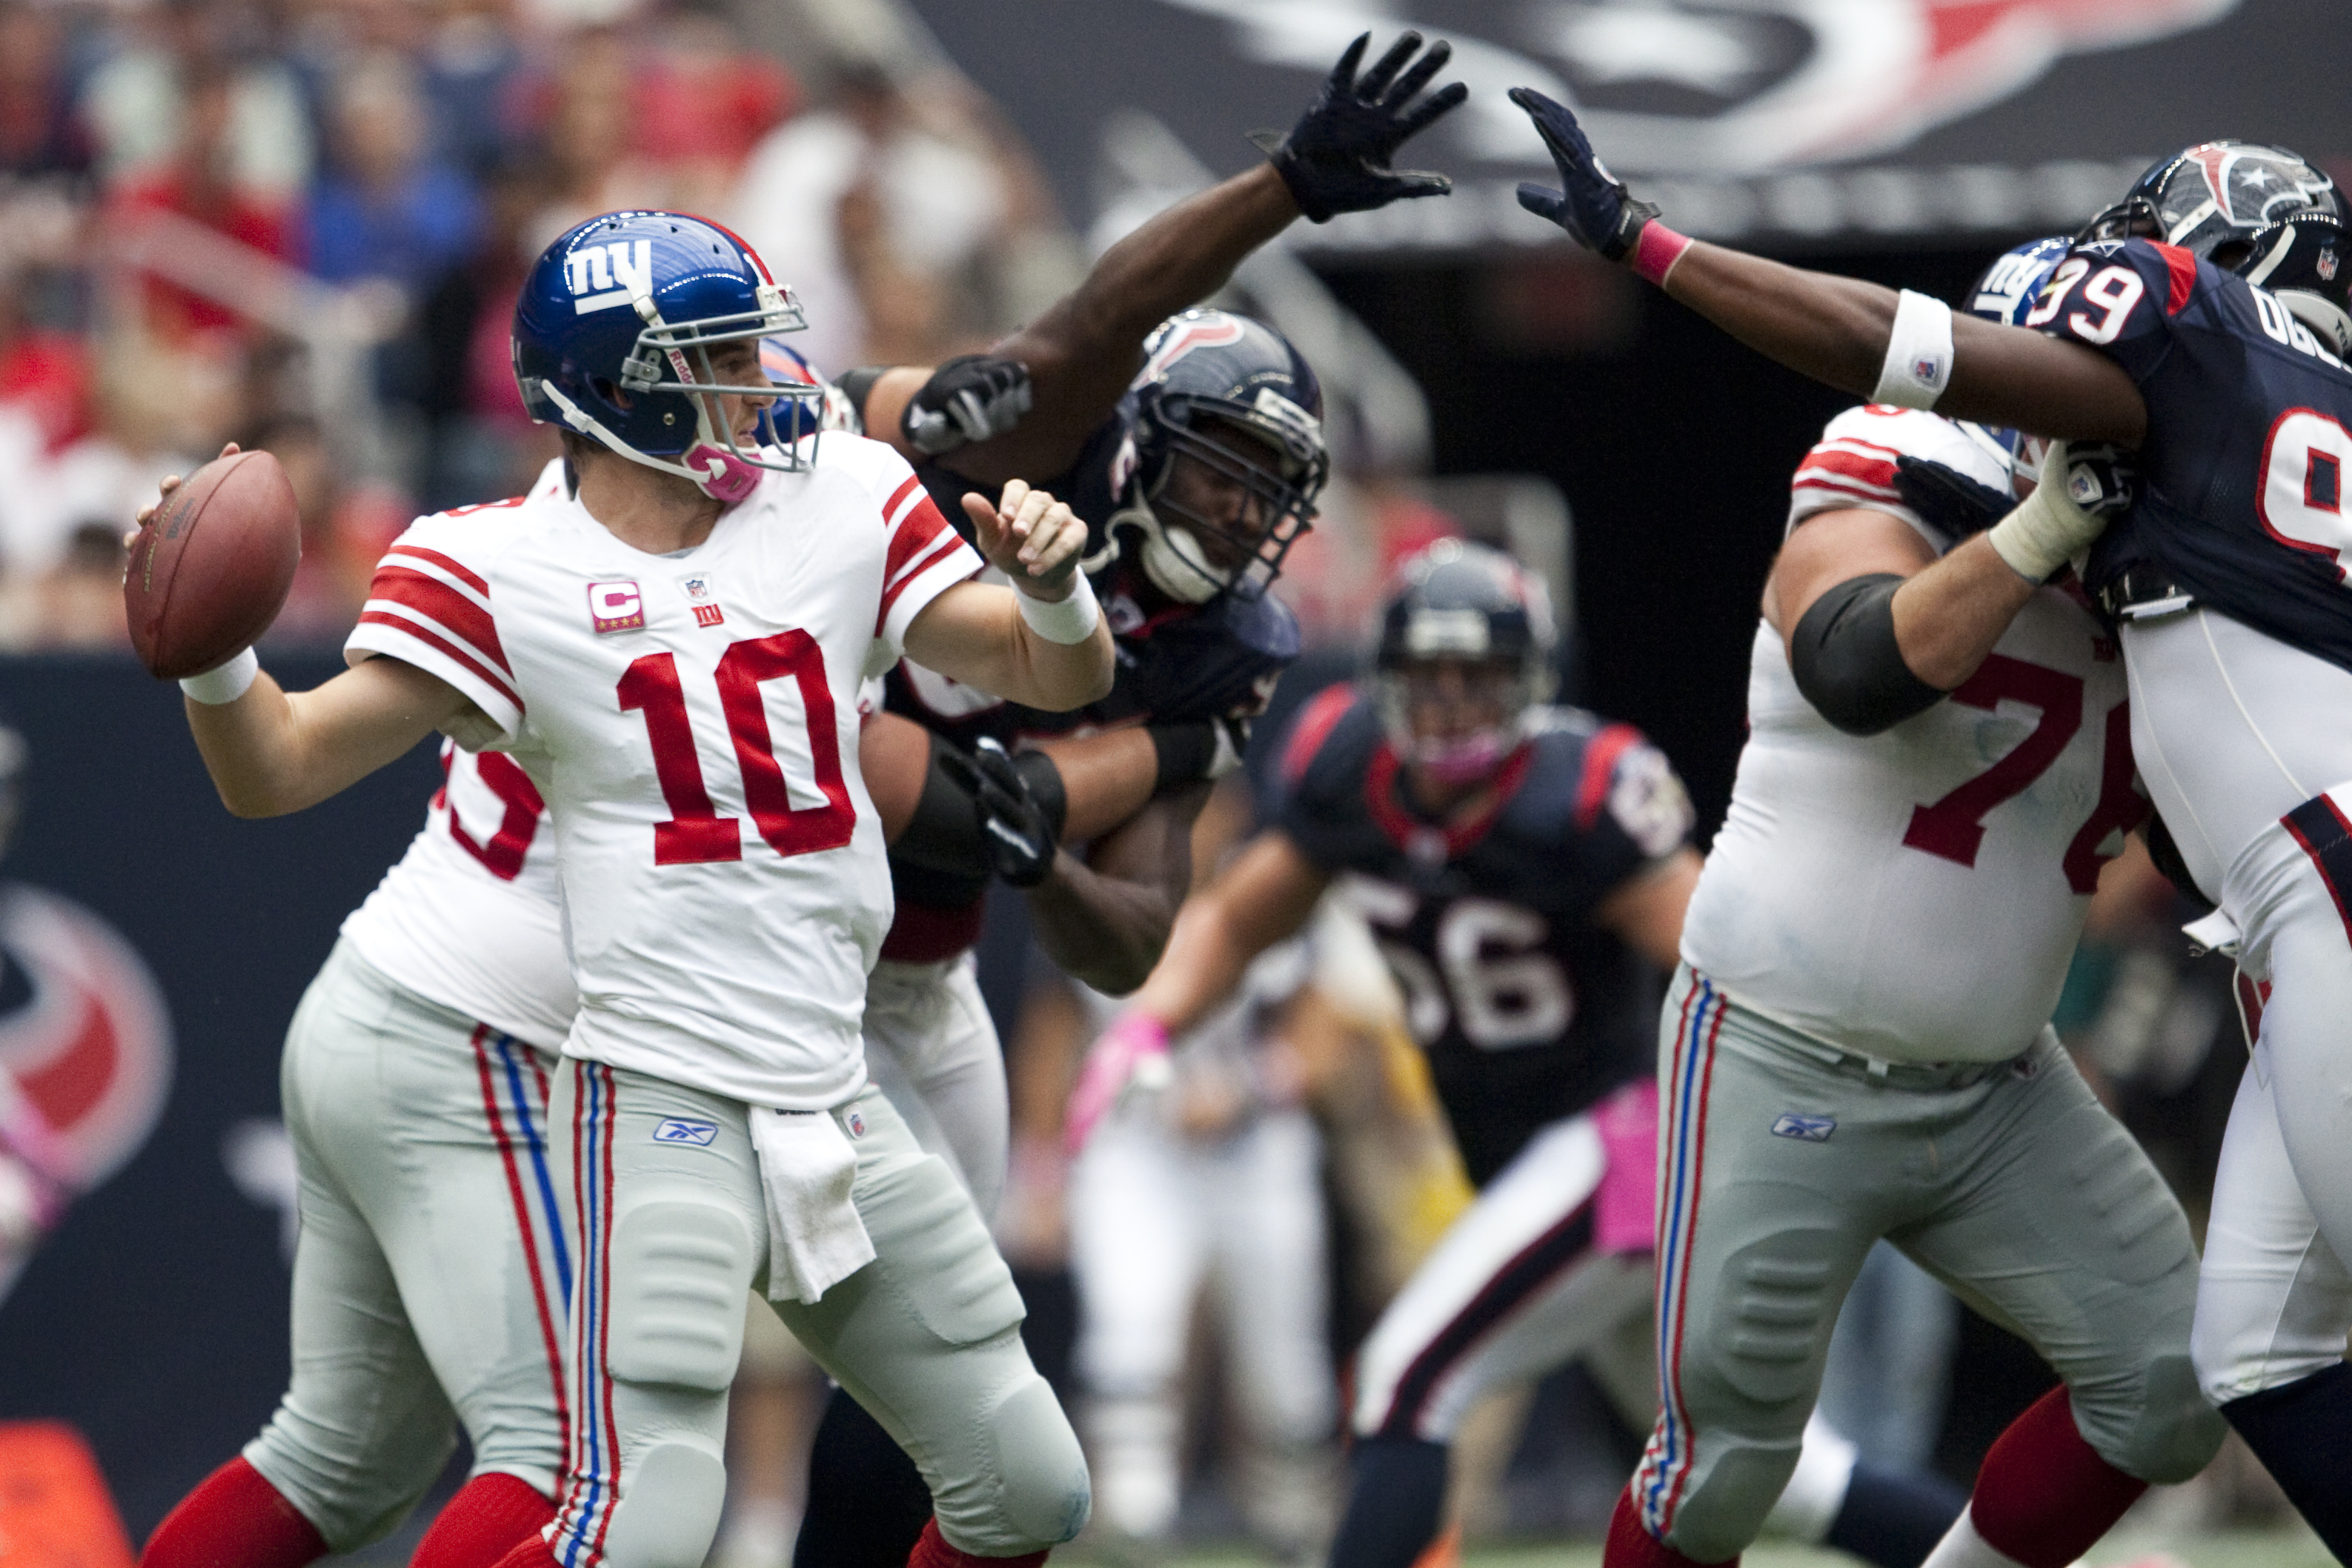 Eli_Manning_vs_Texans_October_2010.jpg